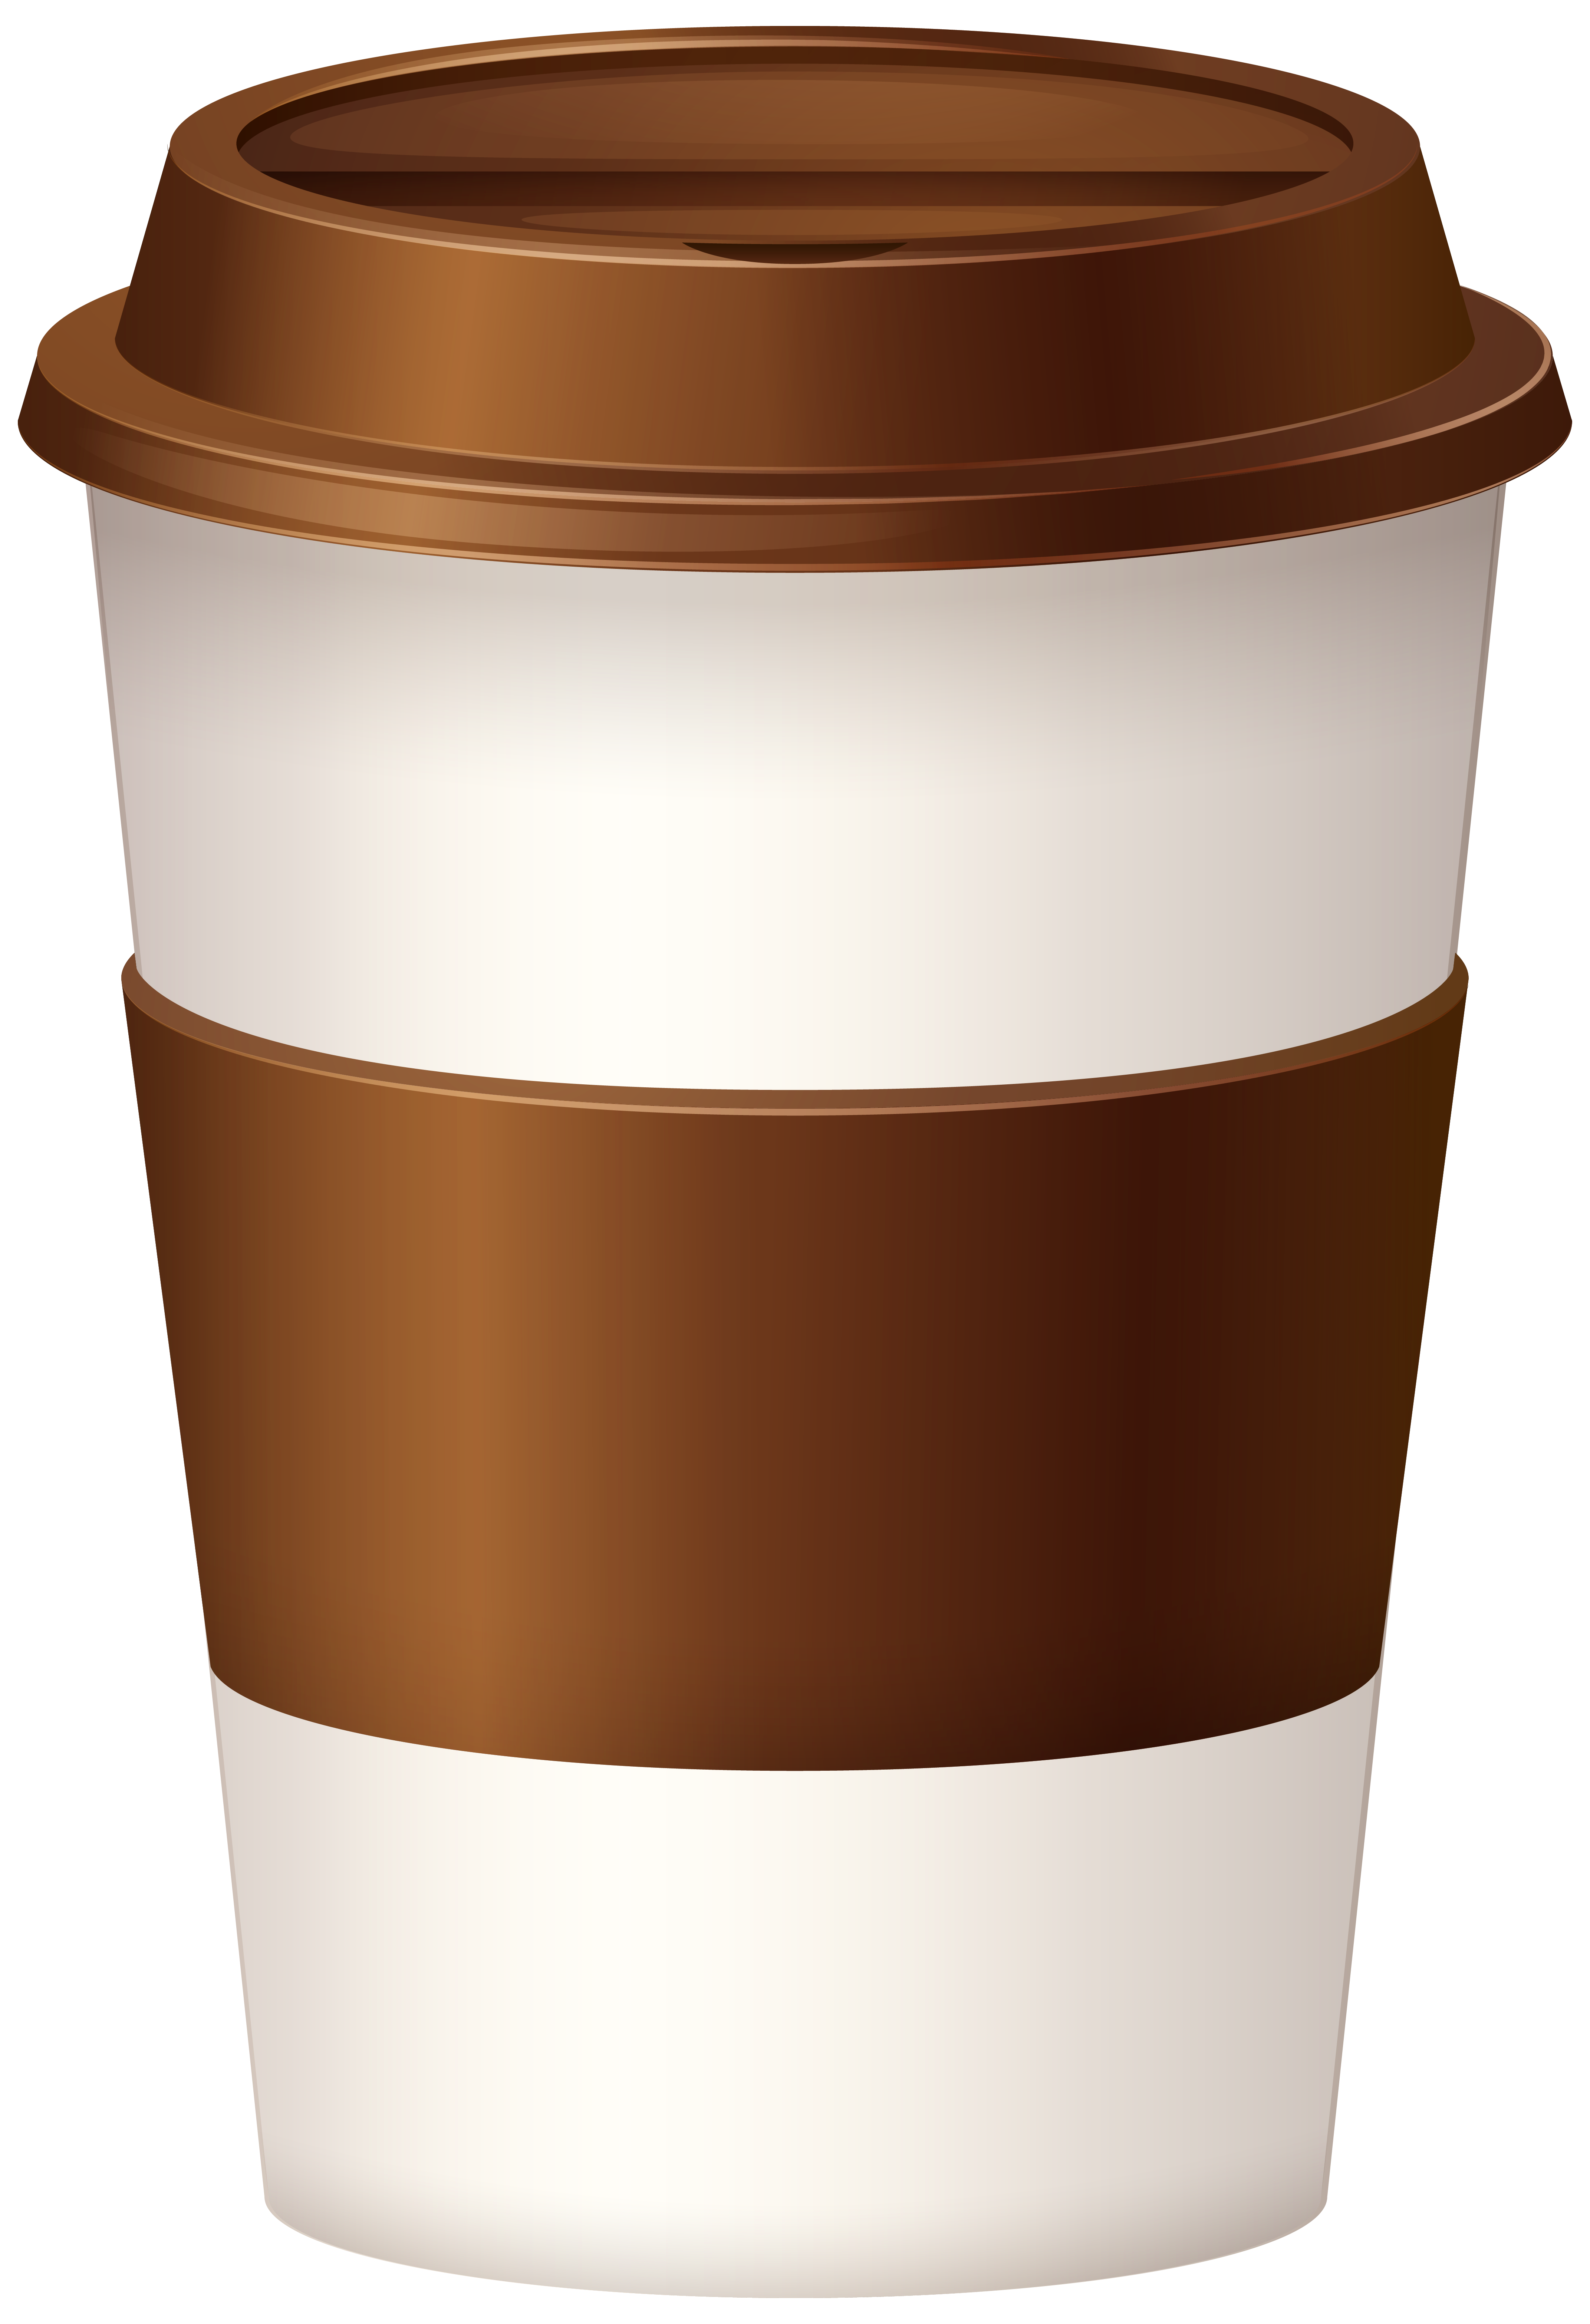 coffee cup to go png